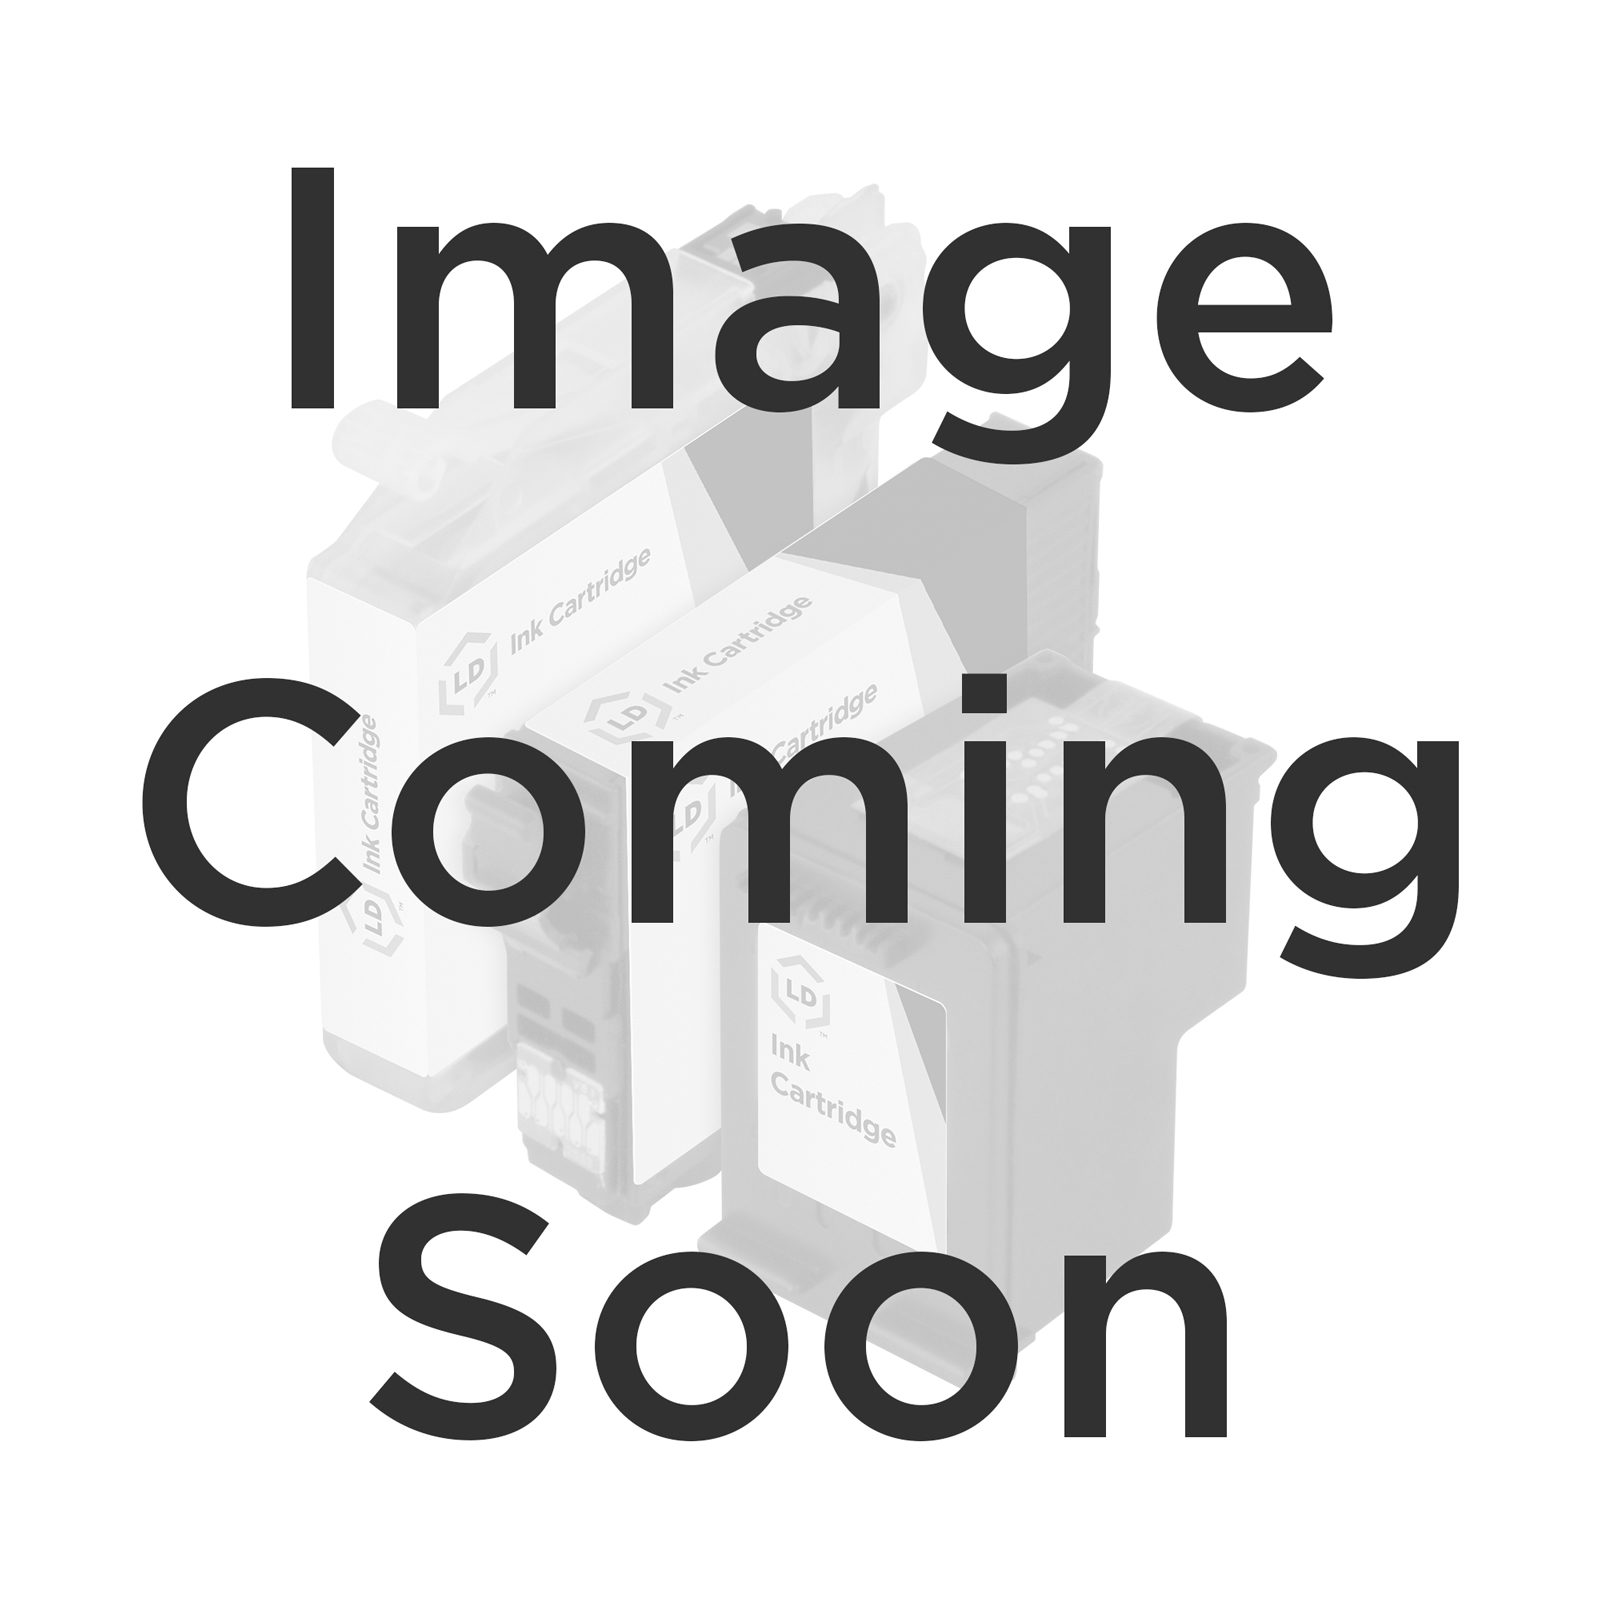 "Post-it Recycled Super Sticky Lined Notes in Farmers Market Colors - 6 per pack - 4"" x 4"" - Assorted"